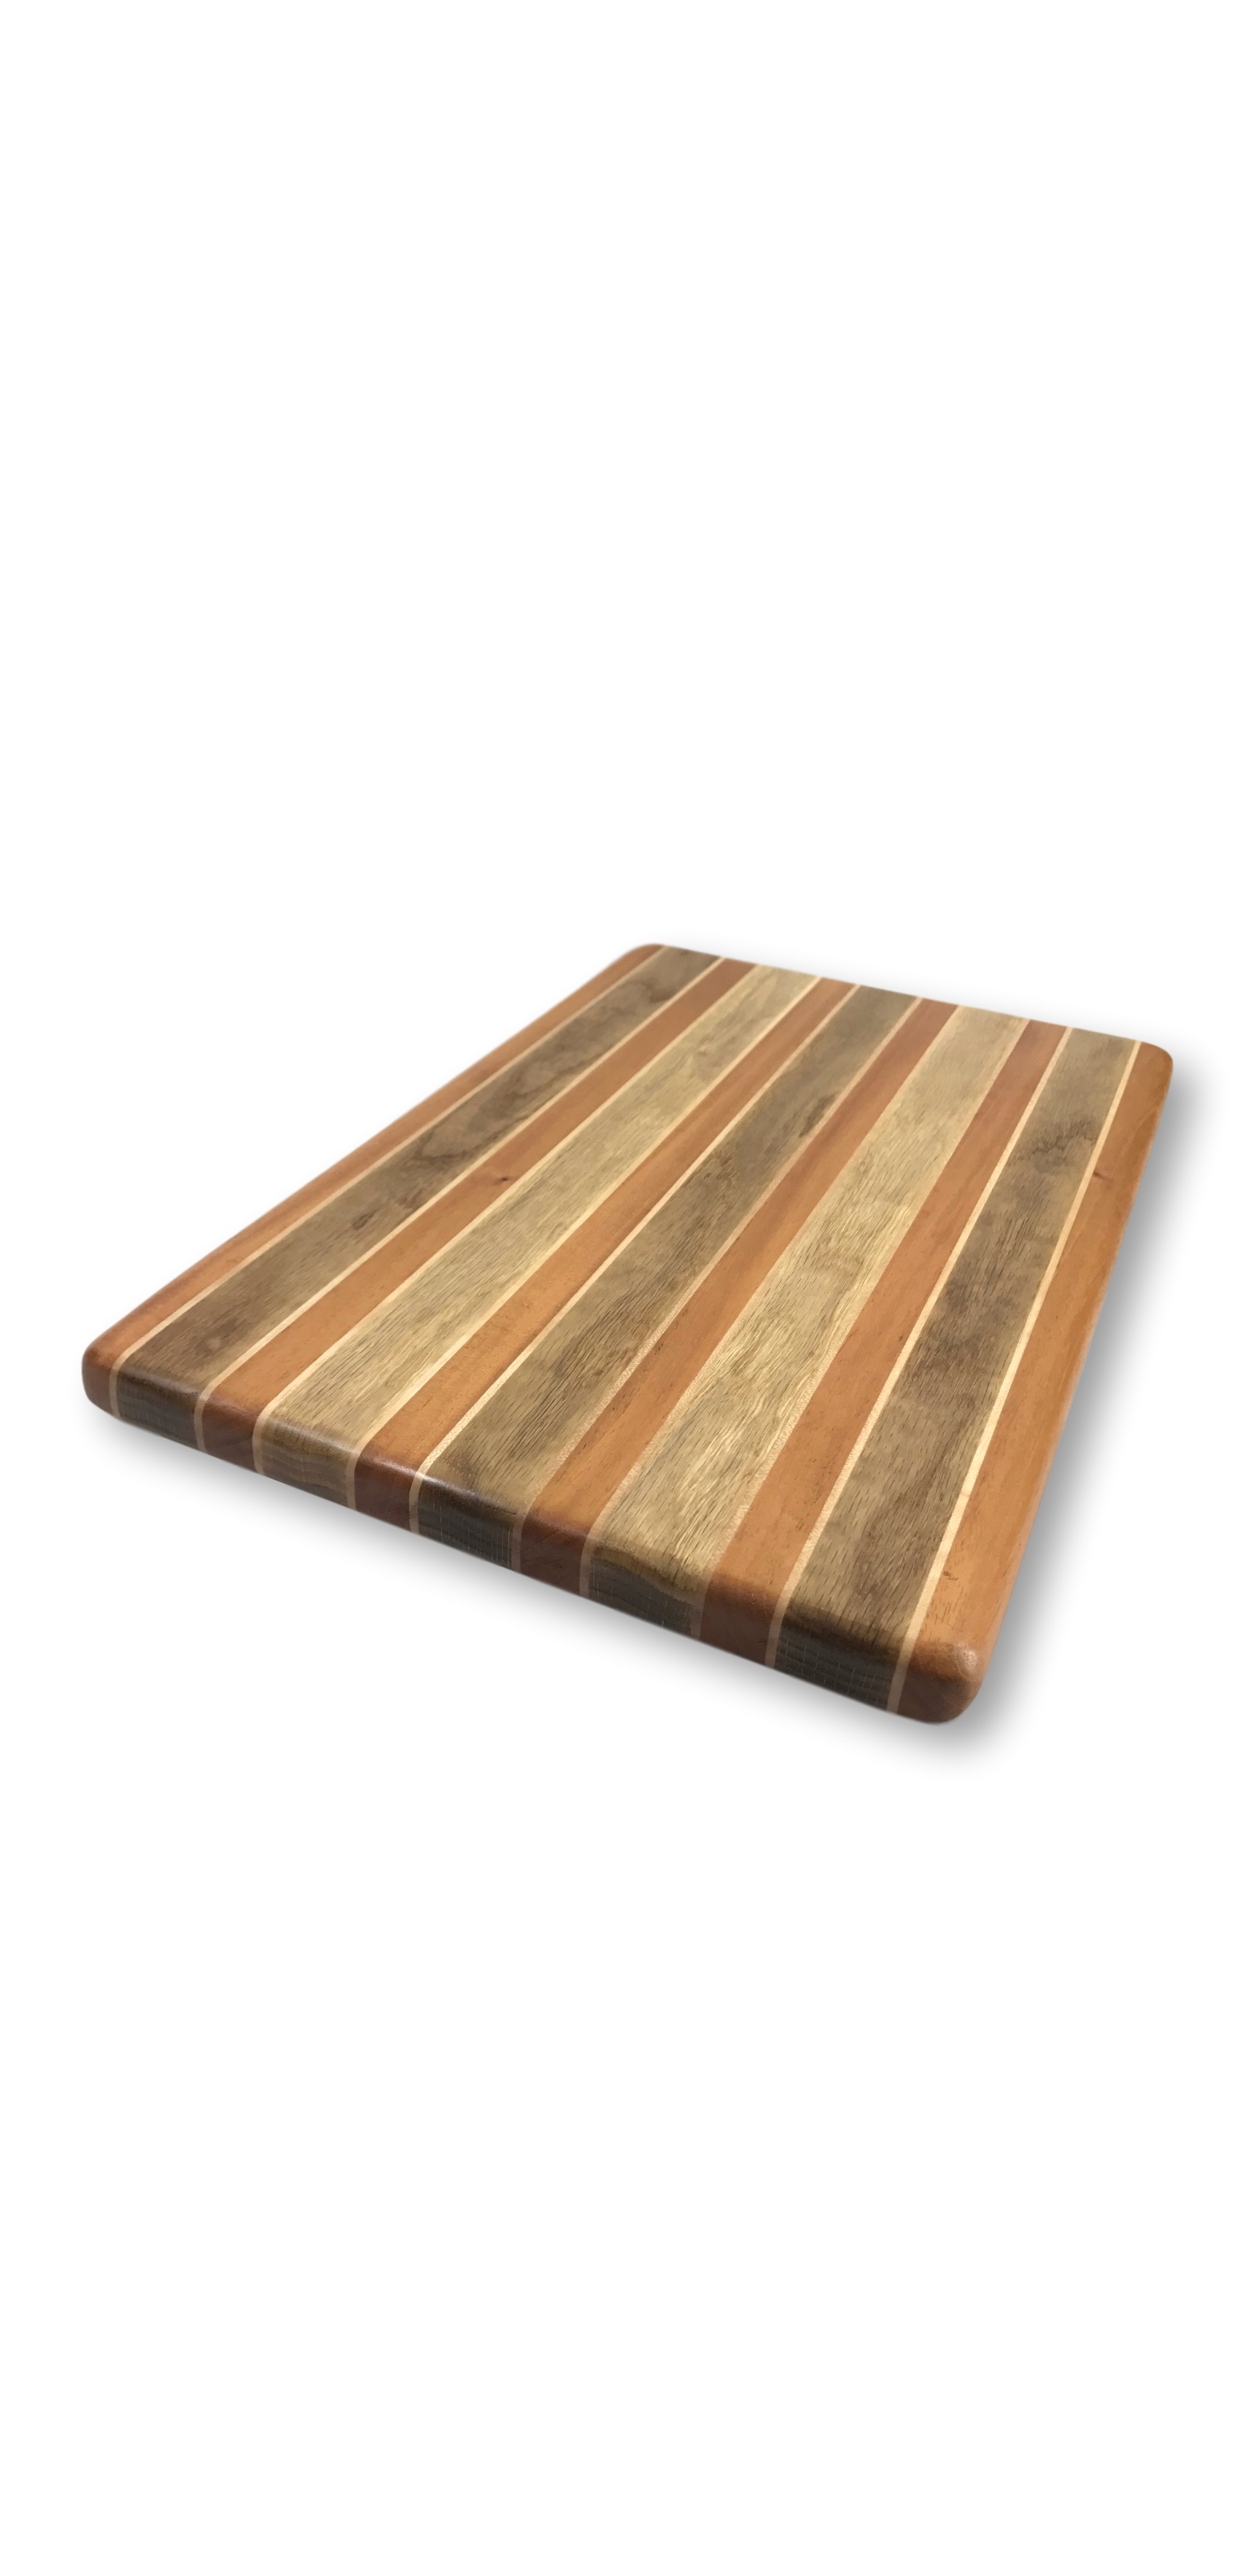 I Use This Cutting Board Periodically Wood Cutting Board